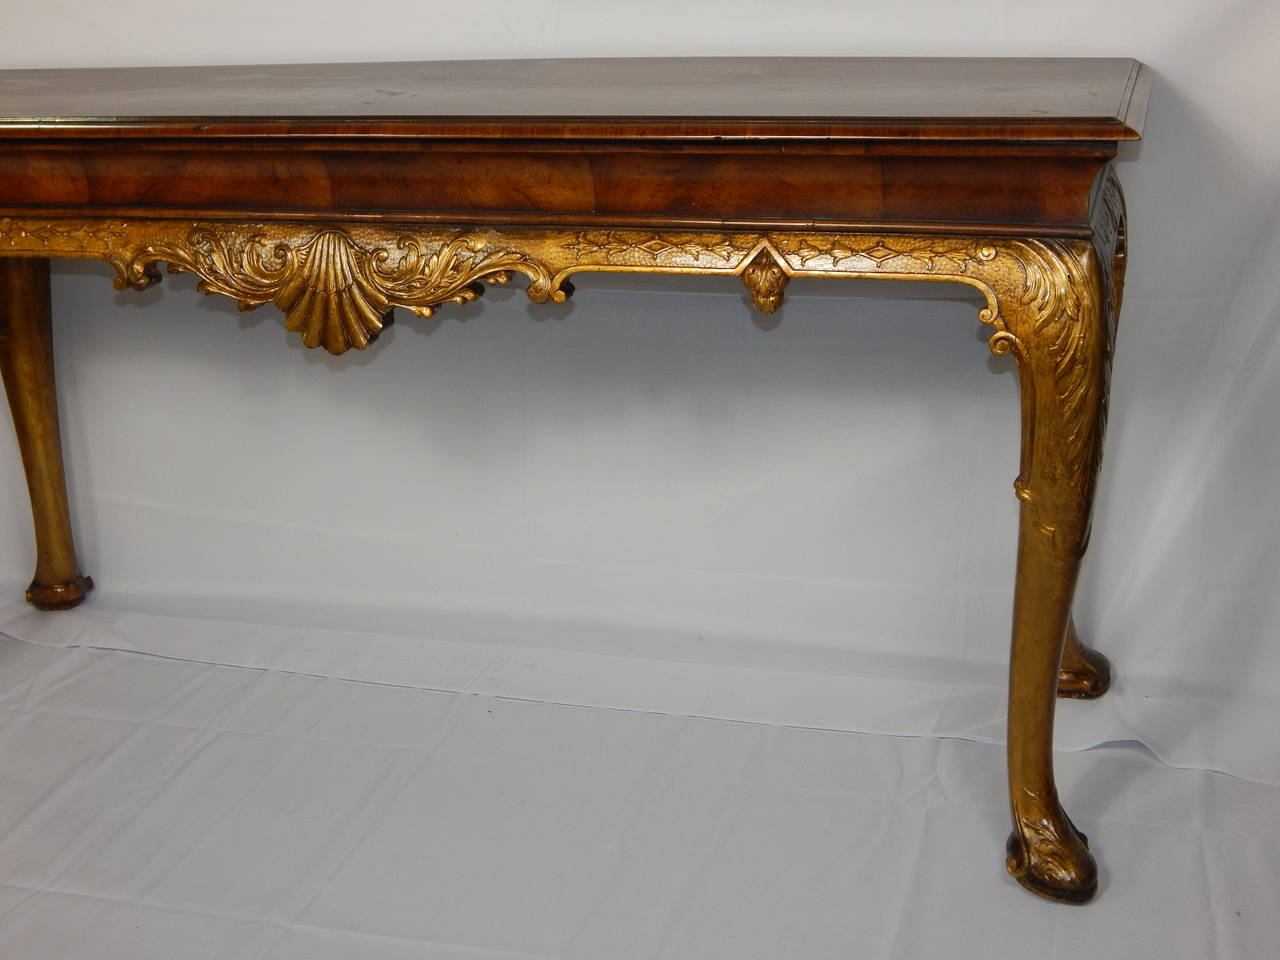 furniture tables console large th century queen anne style giltwood walnut table id f